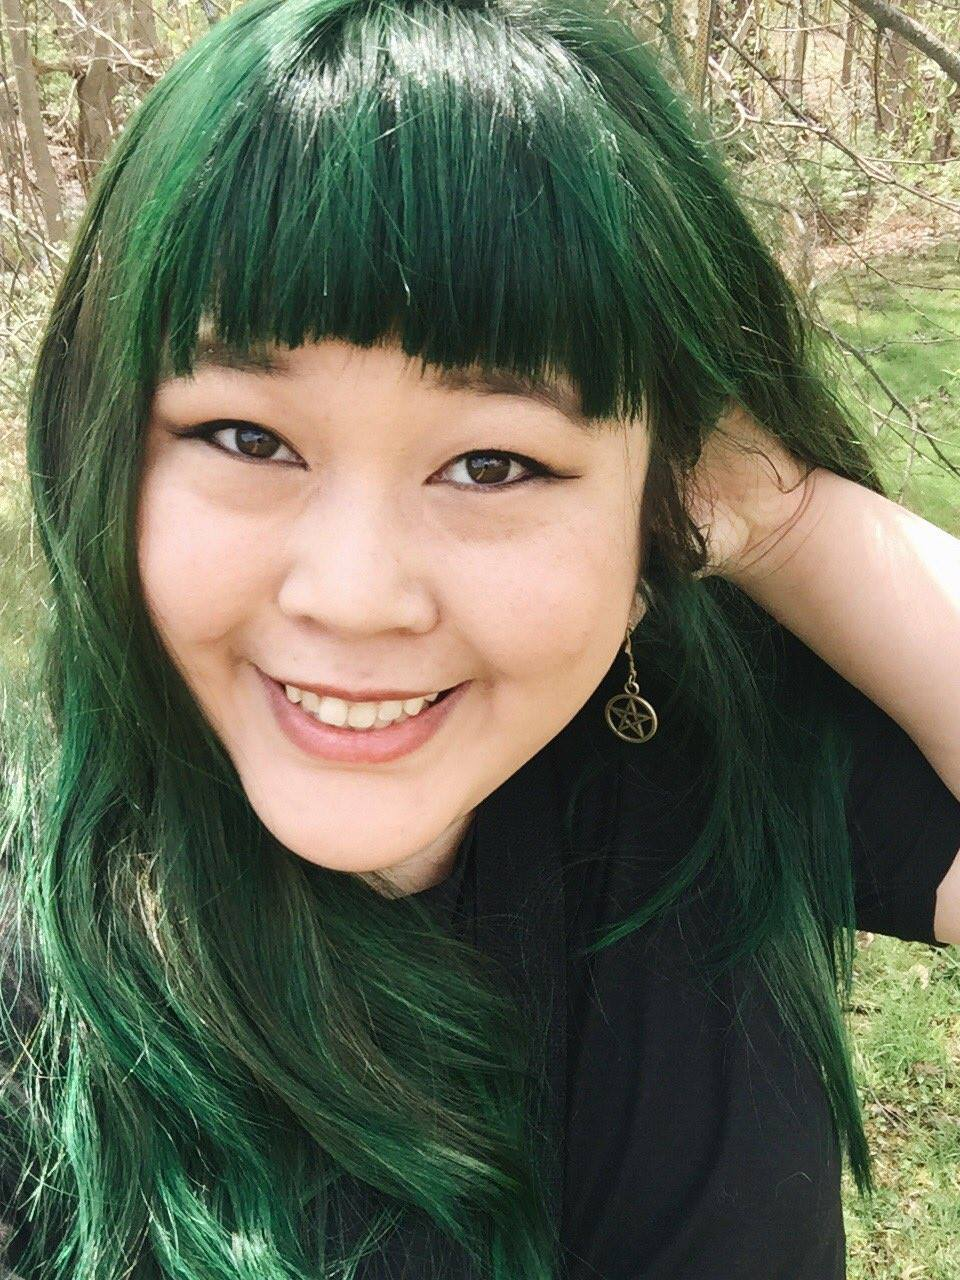 Lysa Chen - Community manager for the Adventurers League and for the Dungeon Masters Guild. D&D writer and DMsGuild Adept. Producer and host of Behold Her Podcast. Cast member of online TTRPG games on D&D Twitch and Encounter Roleplay.